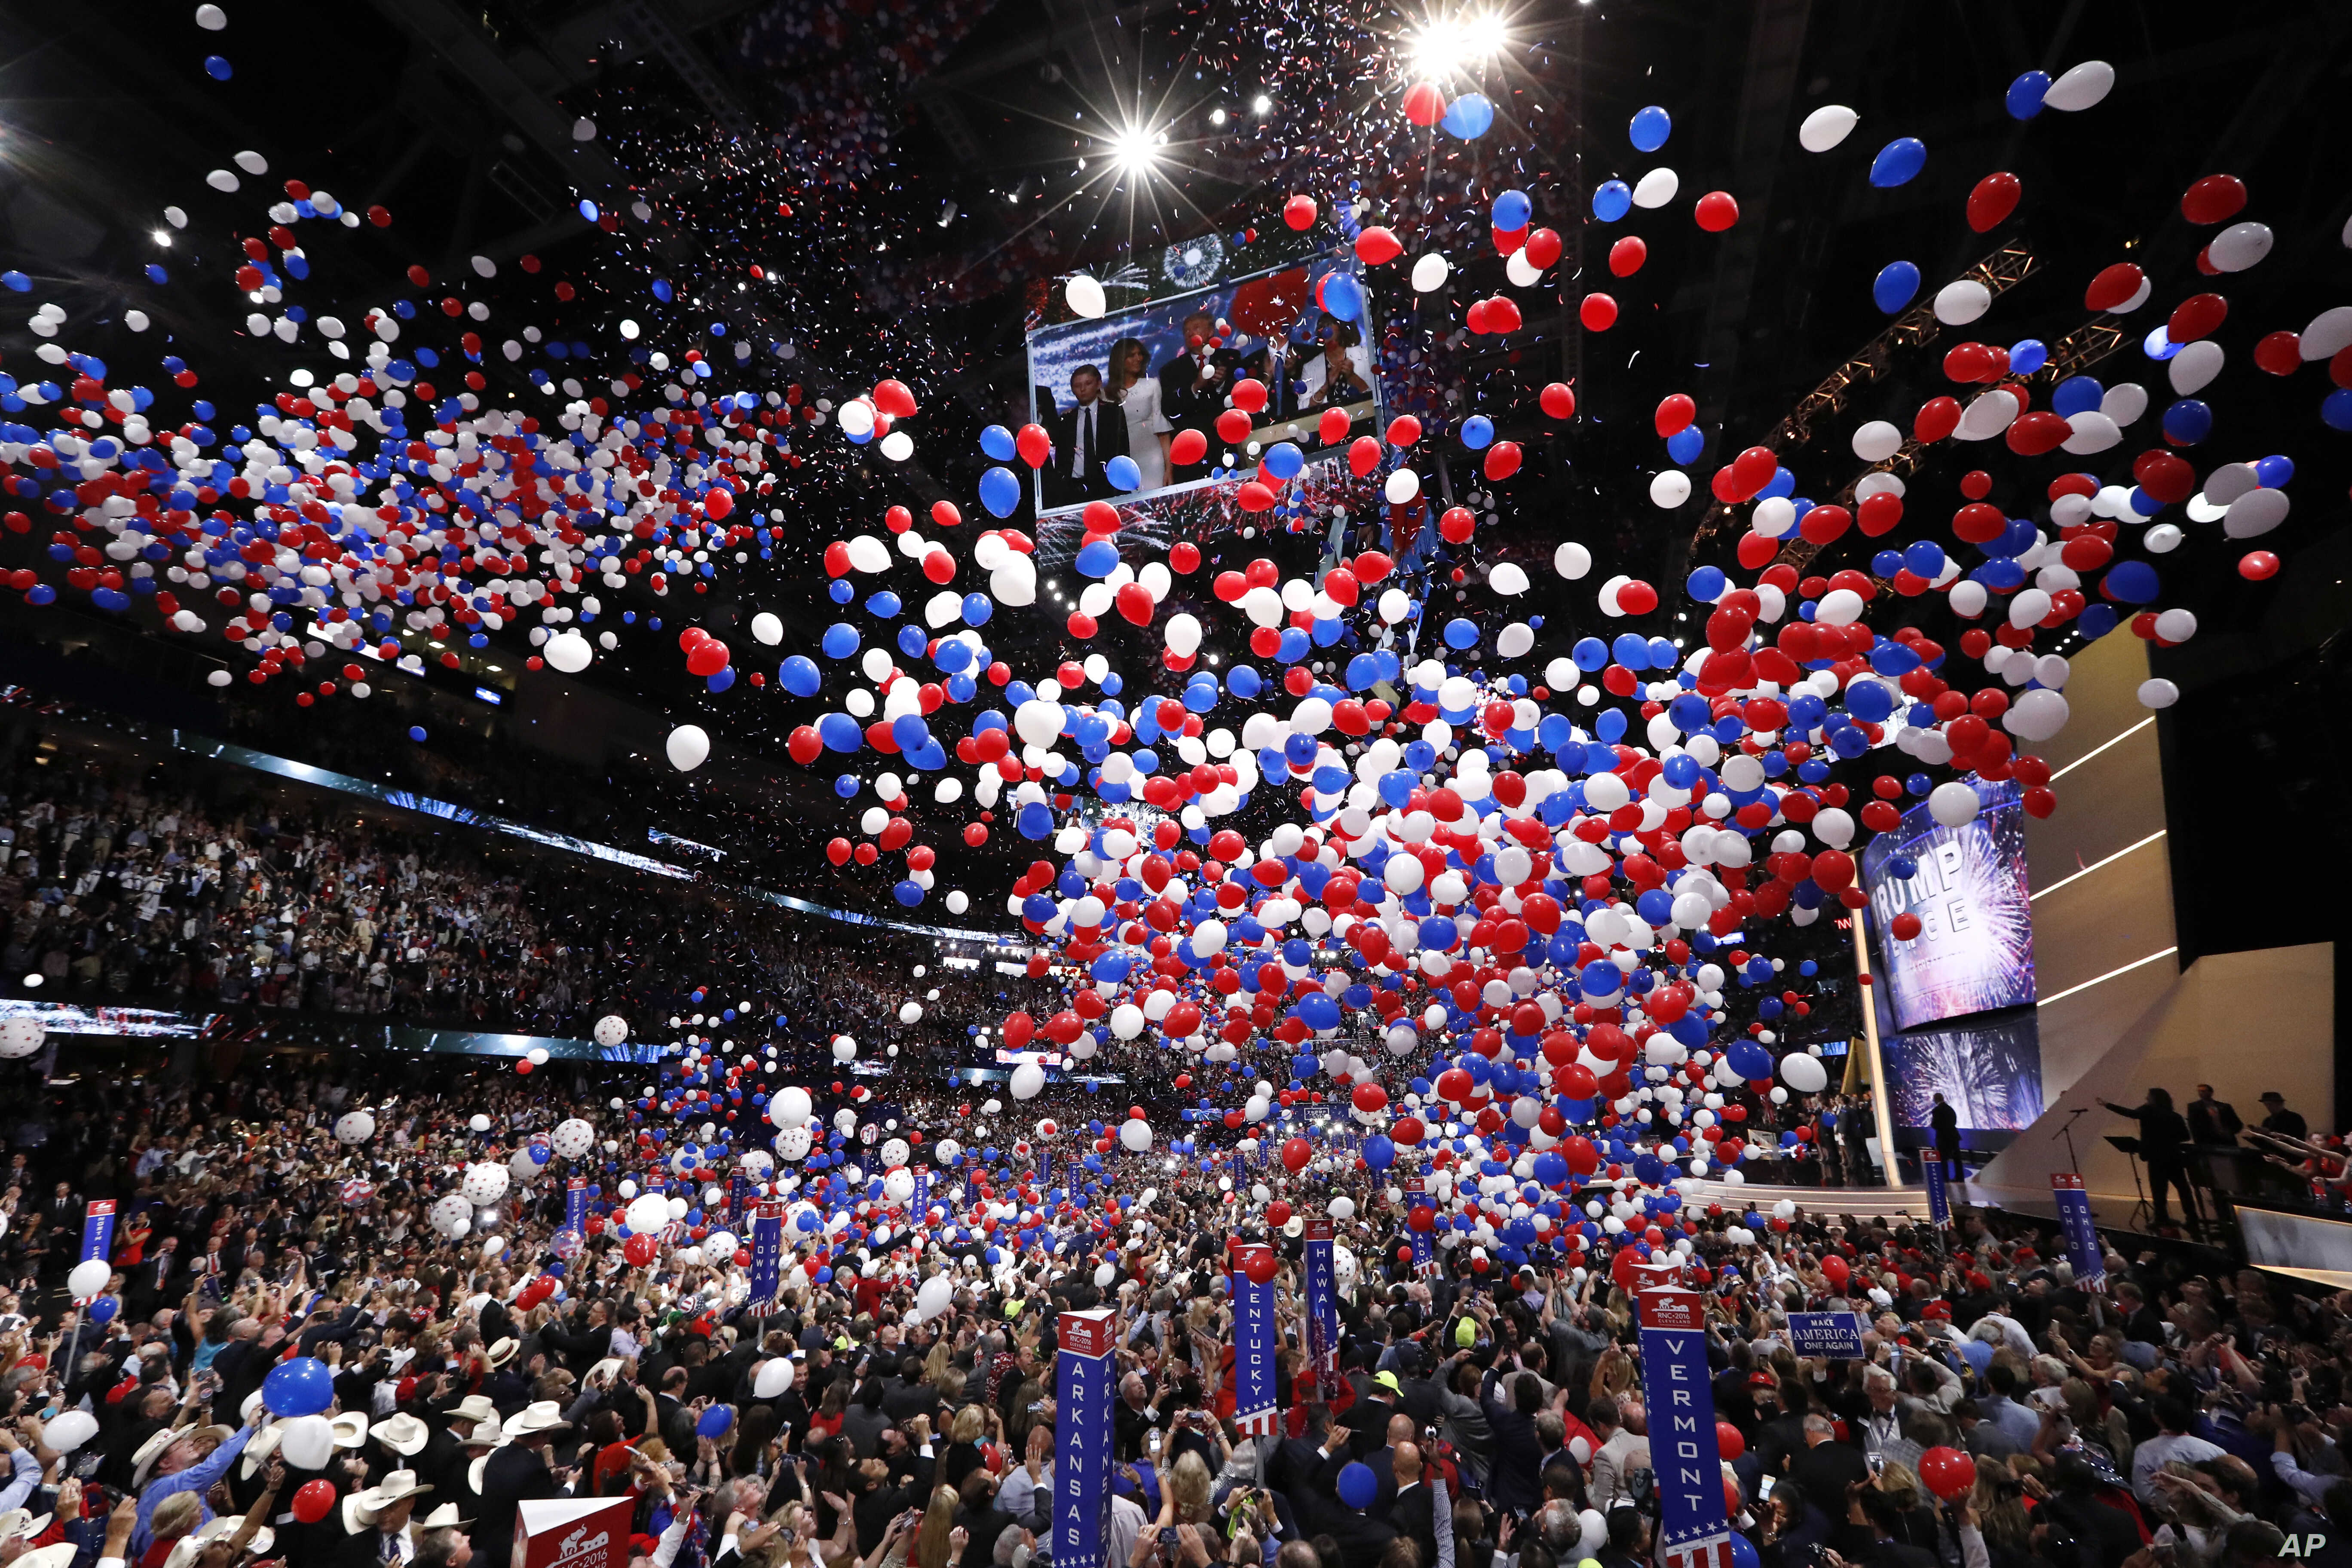 Confetti and balloons fall during celebrations after Donald Trump's acceptance speech on the final day of the Republican National Convention in Cleveland, July 21, 2016.